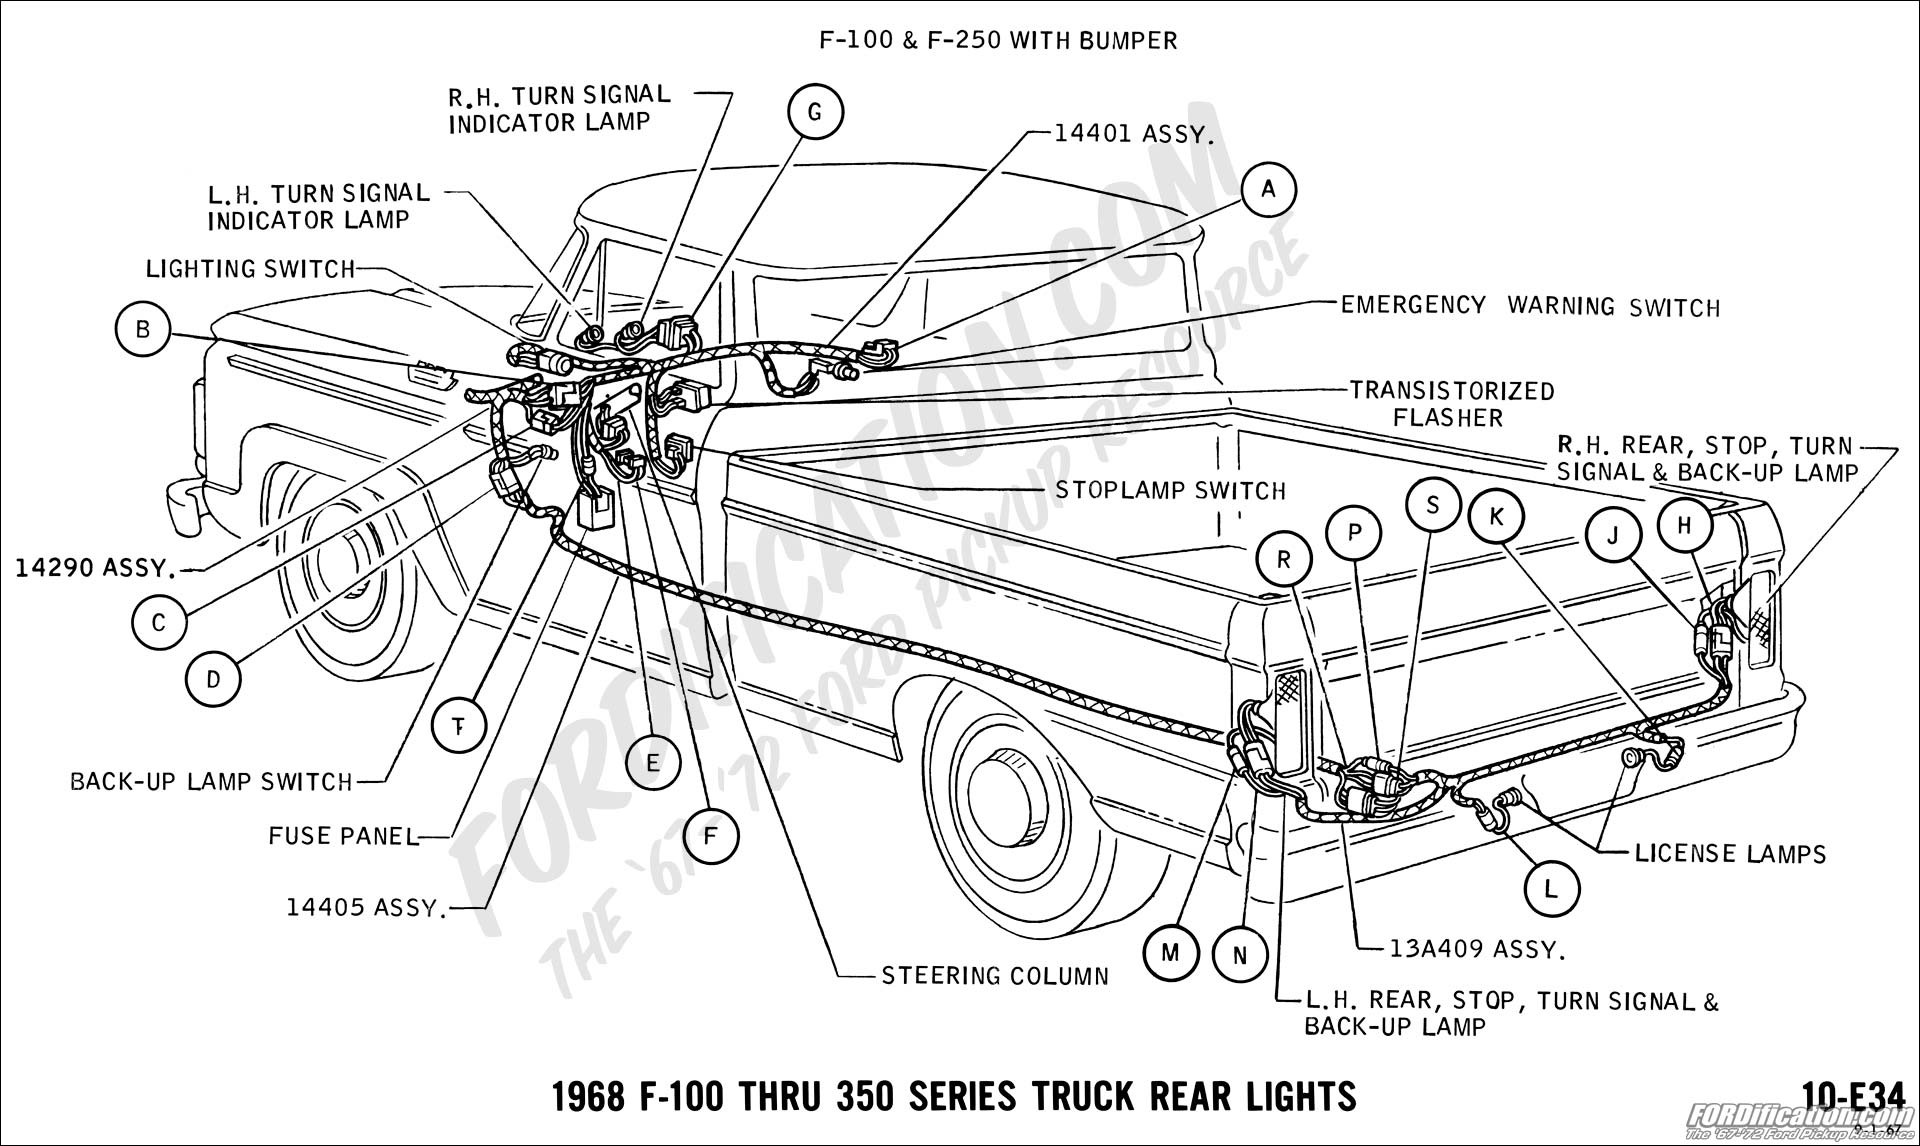 Chevy Truck Body Parts Diagram Lifted fords ford Under the Hood Pinterest Of Chevy Truck Body Parts Diagram